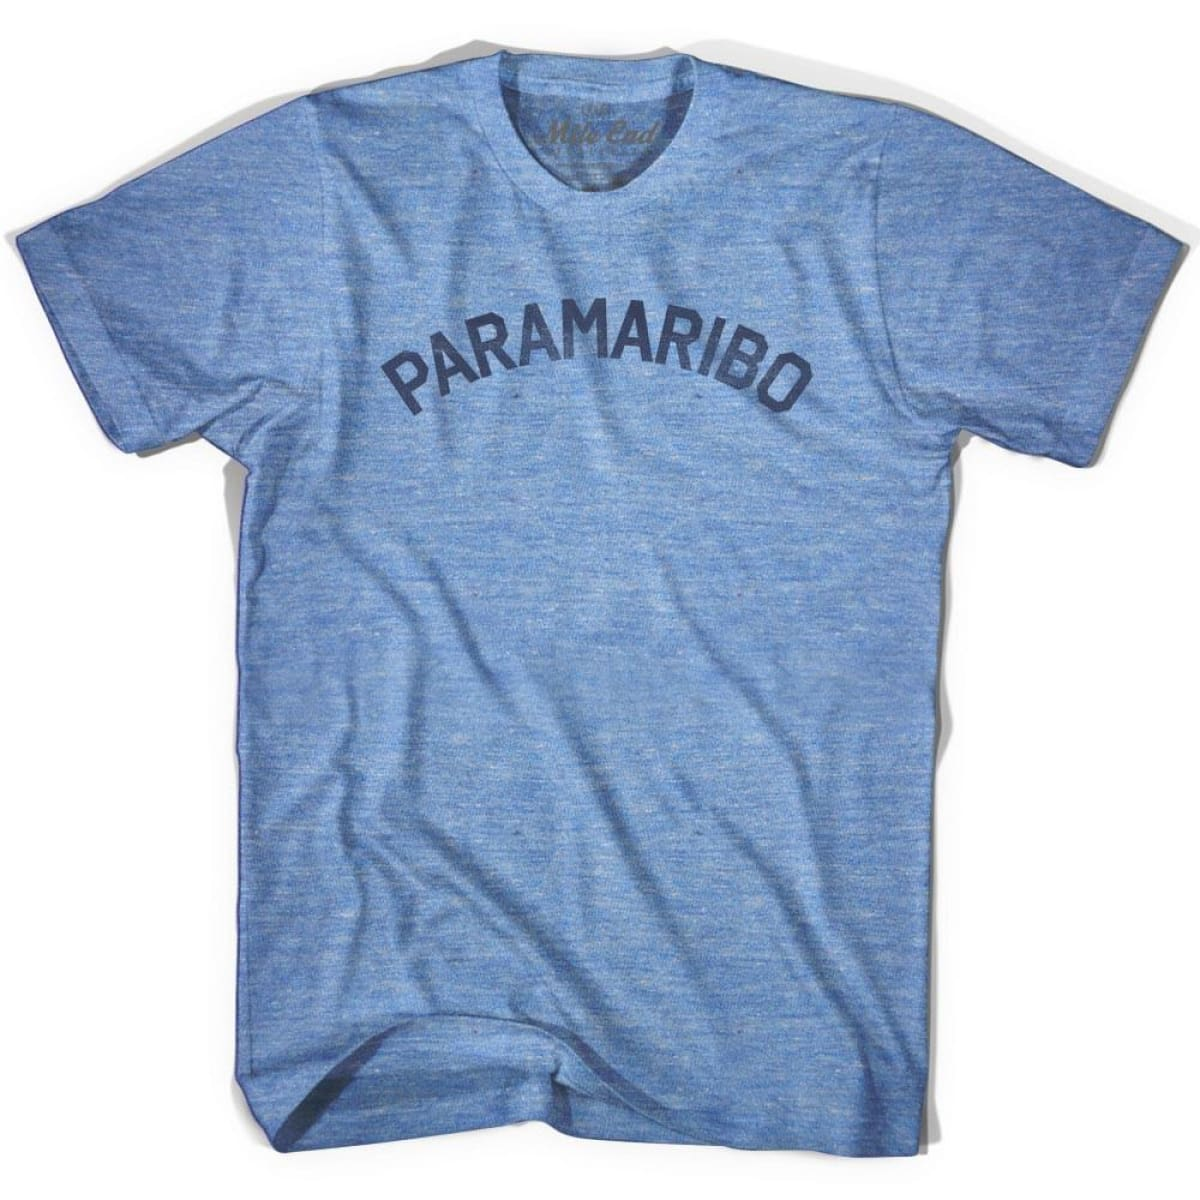 Paramaribo City Vintage T-shirt - Athletic Blue / Adult X-Small - Mile End City